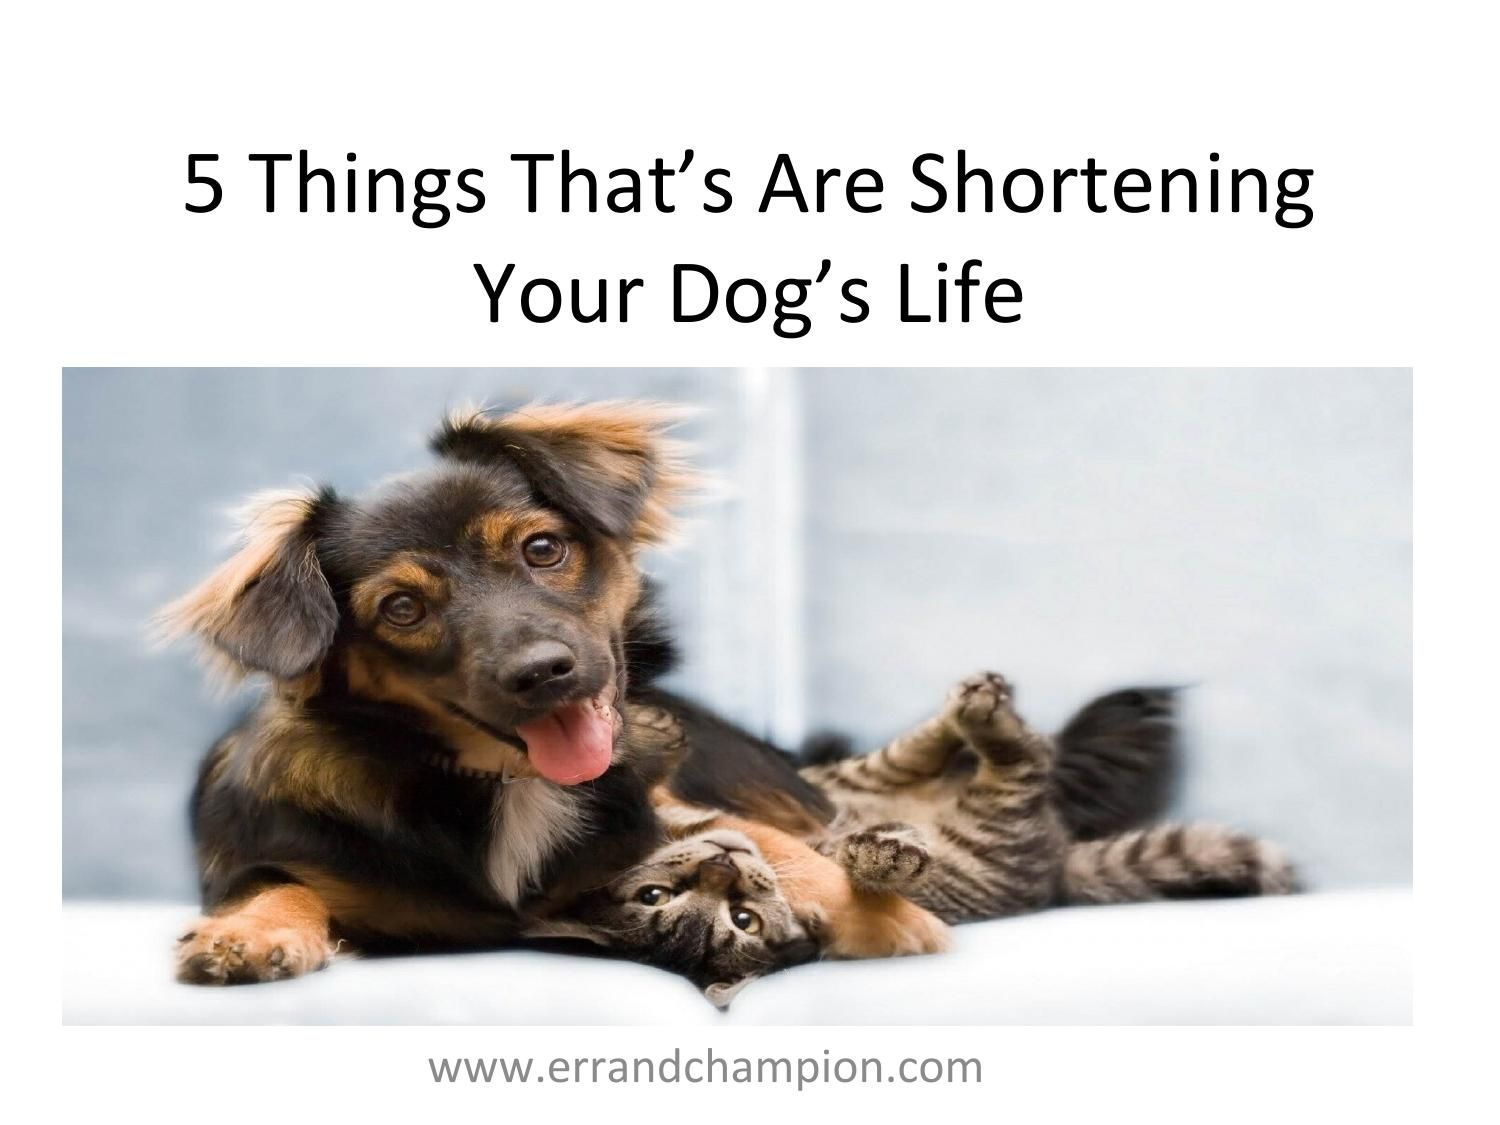 5 Things That are Shortening Your Dog's Life Dogs, Pet